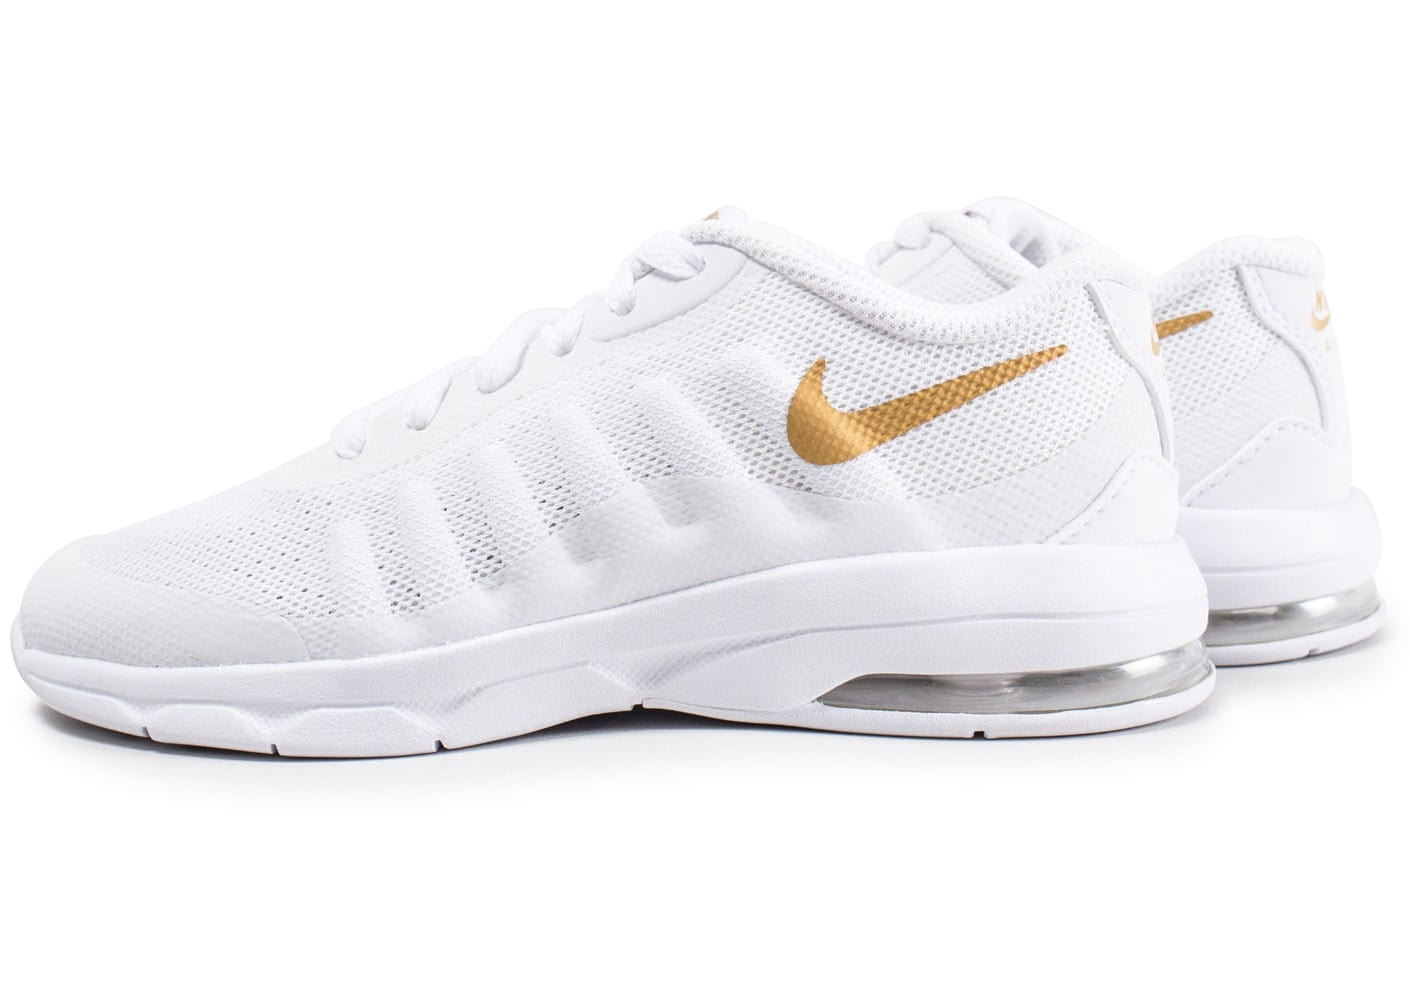 nike air max enfants fille blanche